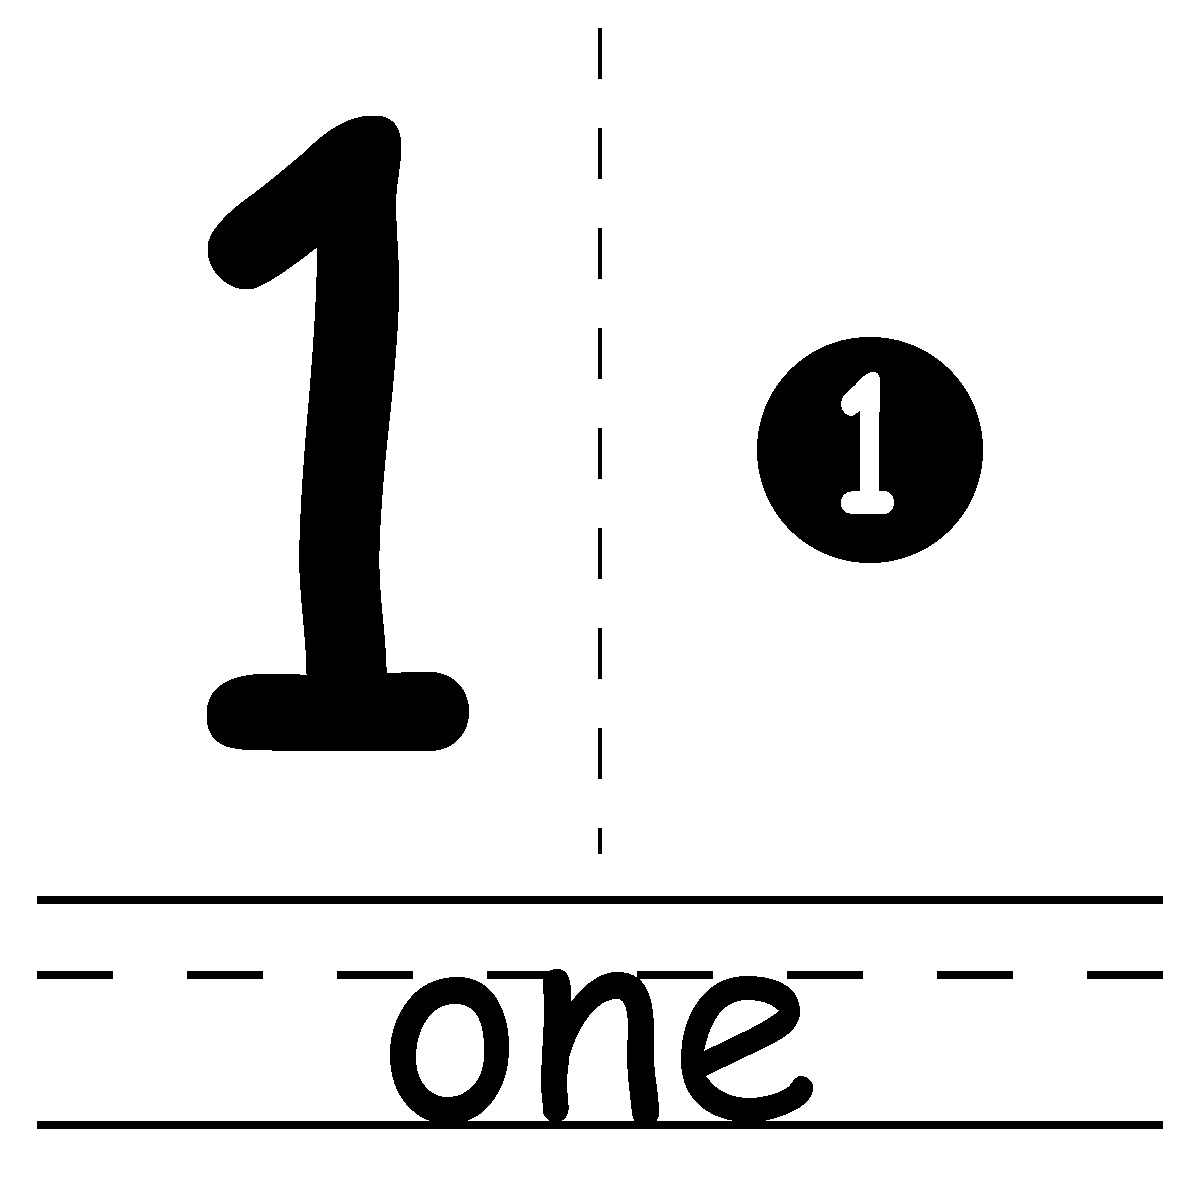 Free Number 1 Outline Cliparts, Download Free Clip Art